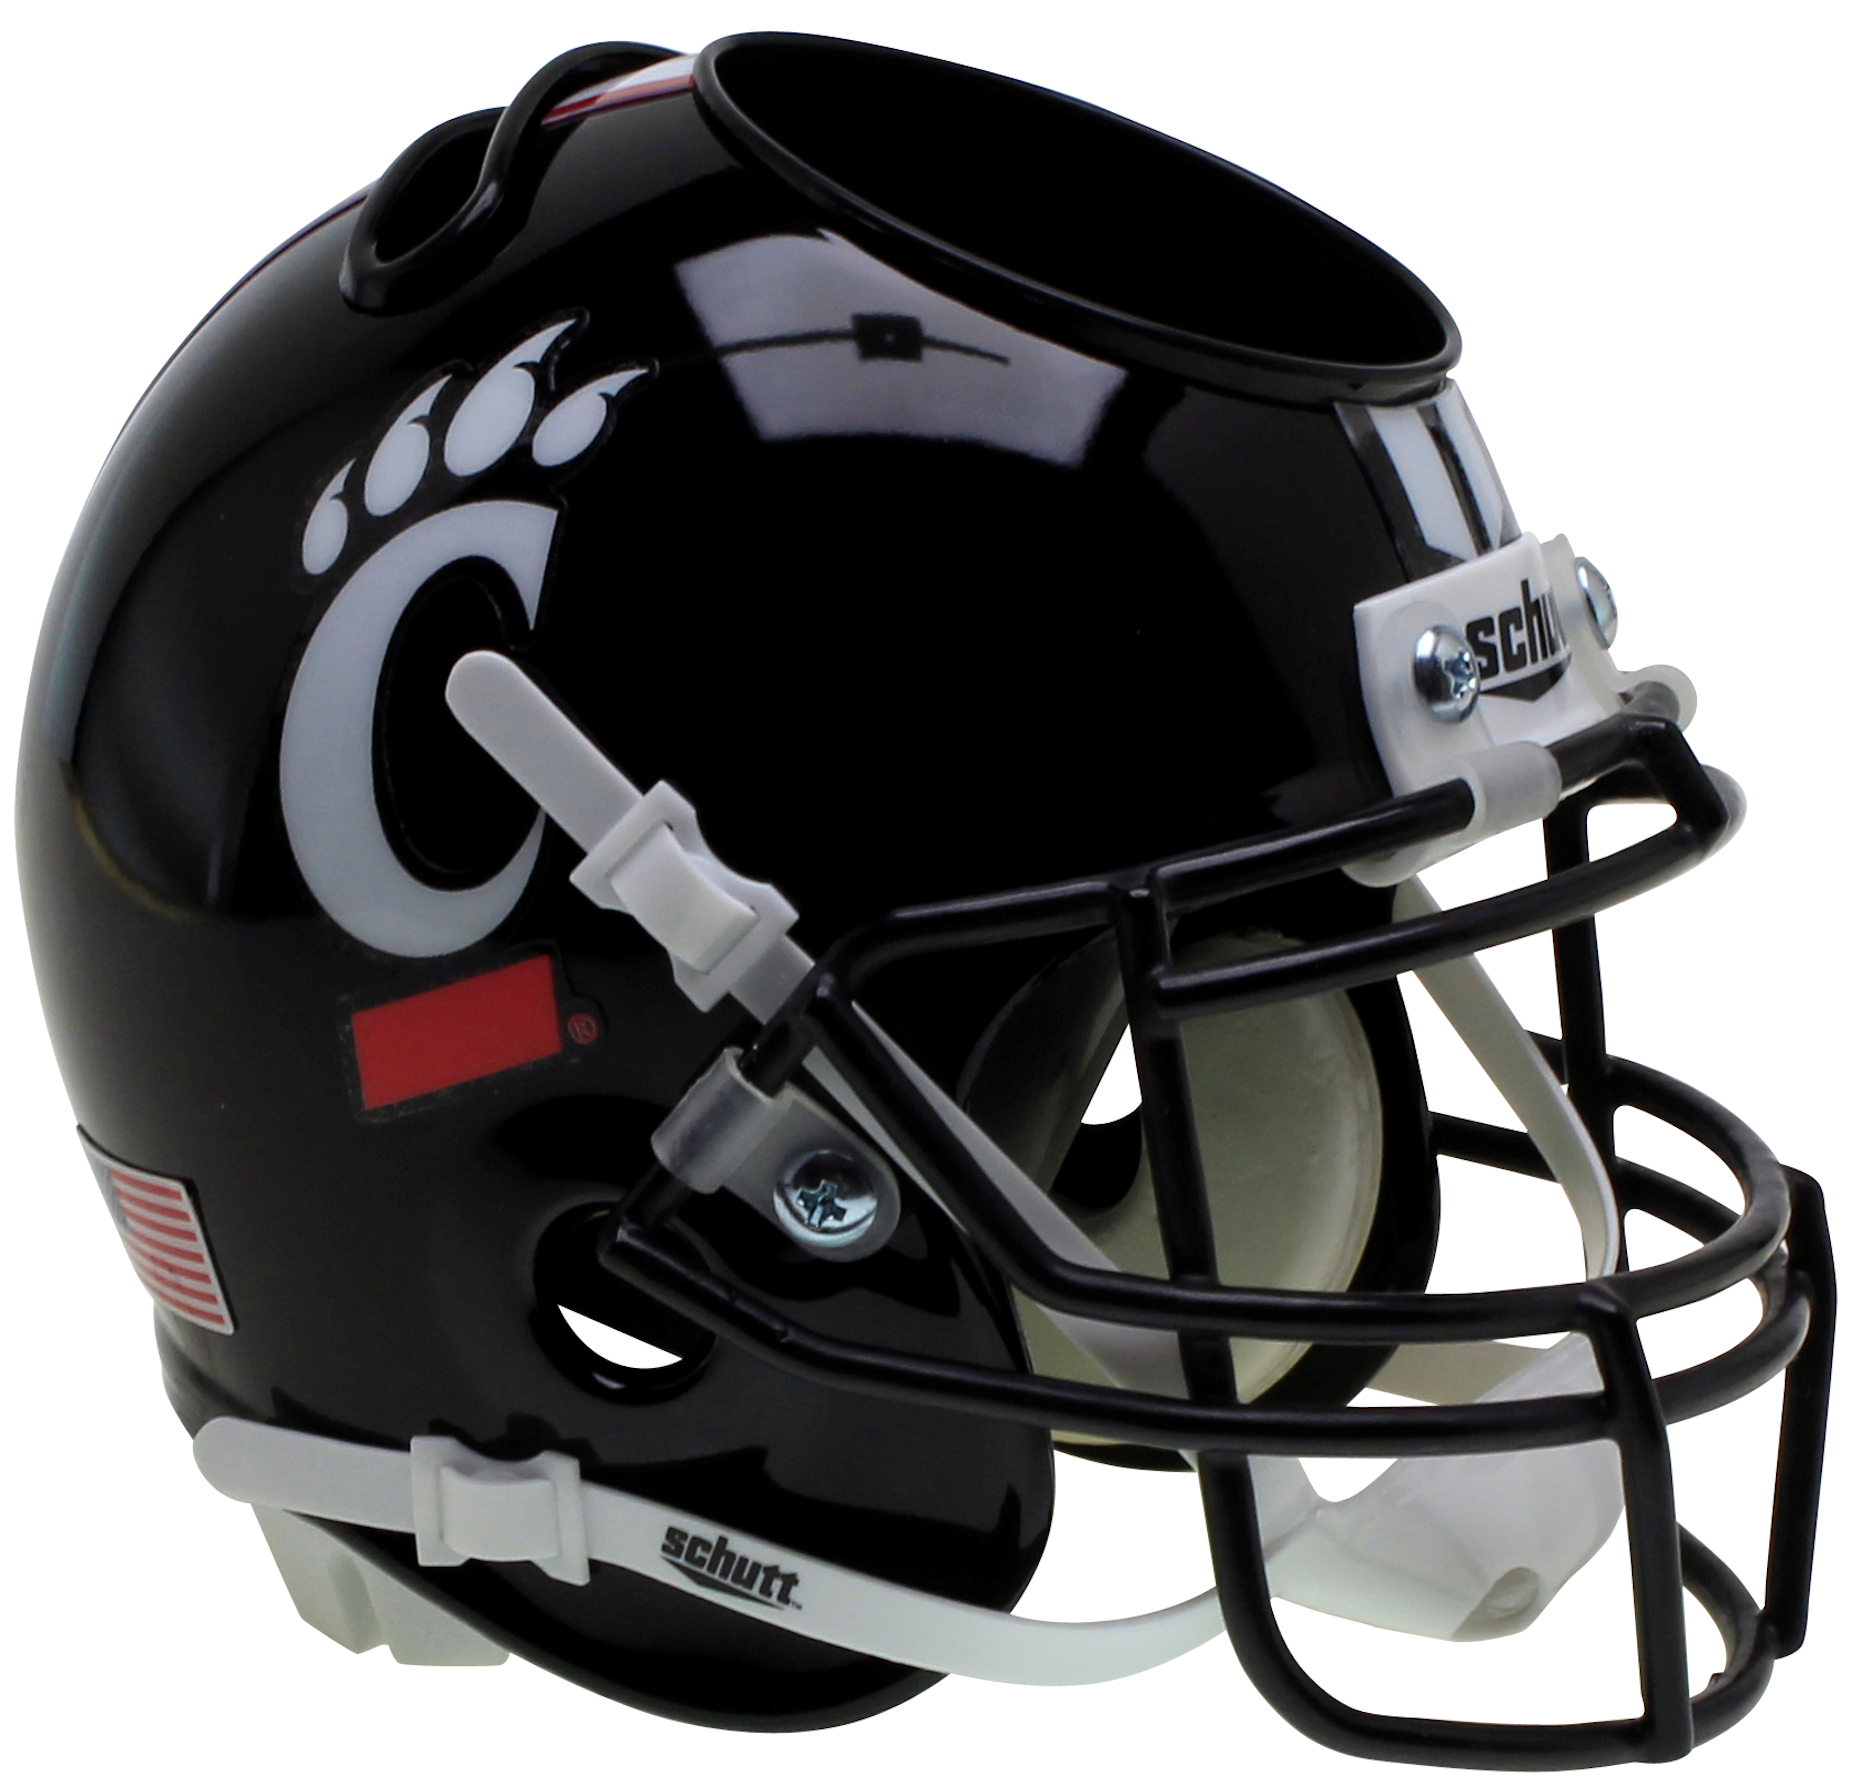 Cincinnati Bearcats Mini Football Helmet Desk Caddy <B>Black</B>